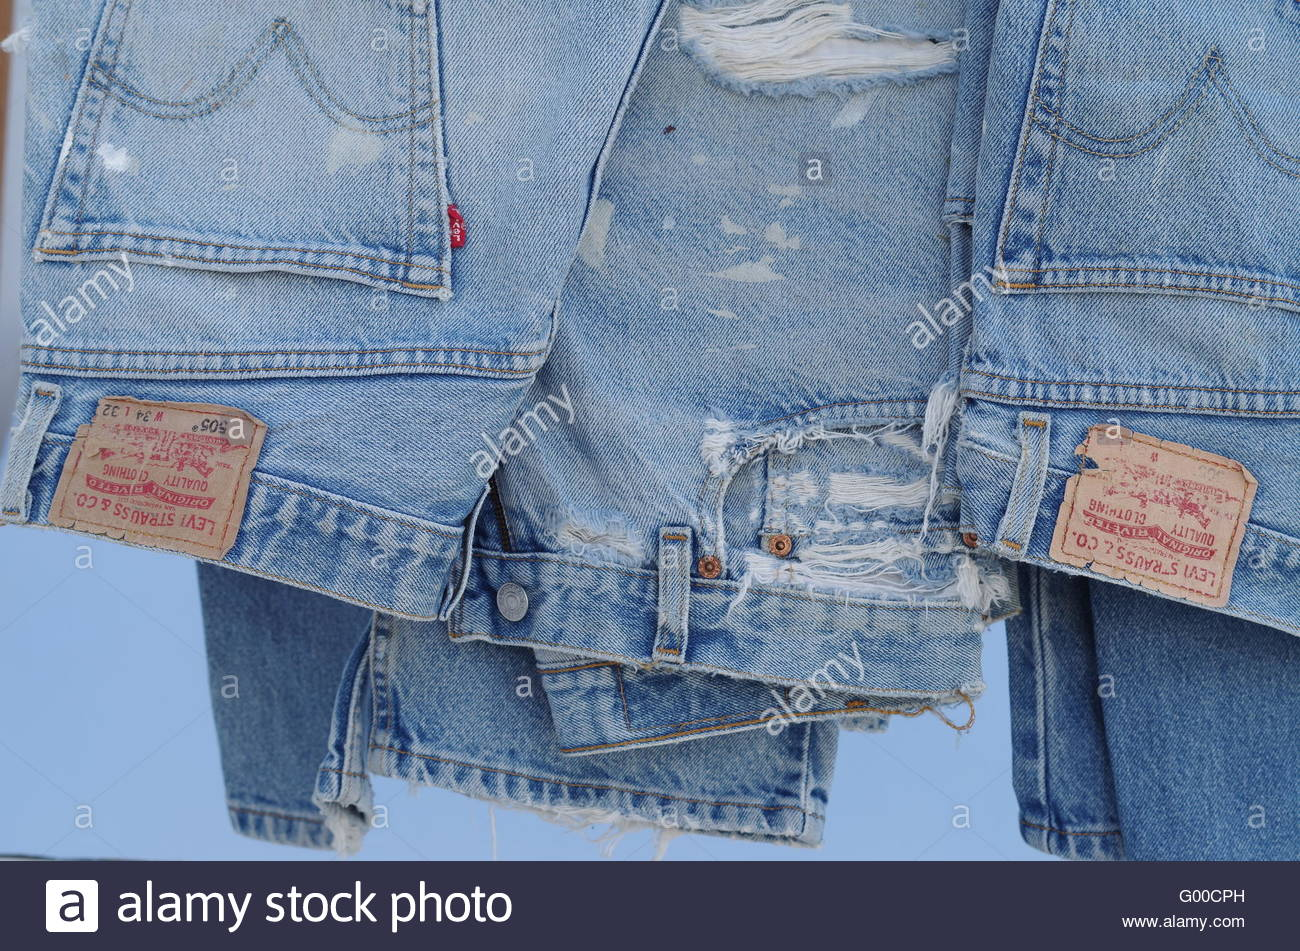 Studio shots closeup old well worn torn frayed Levi 505 jeans showing labels and tags natural light with zippers - Stock Image